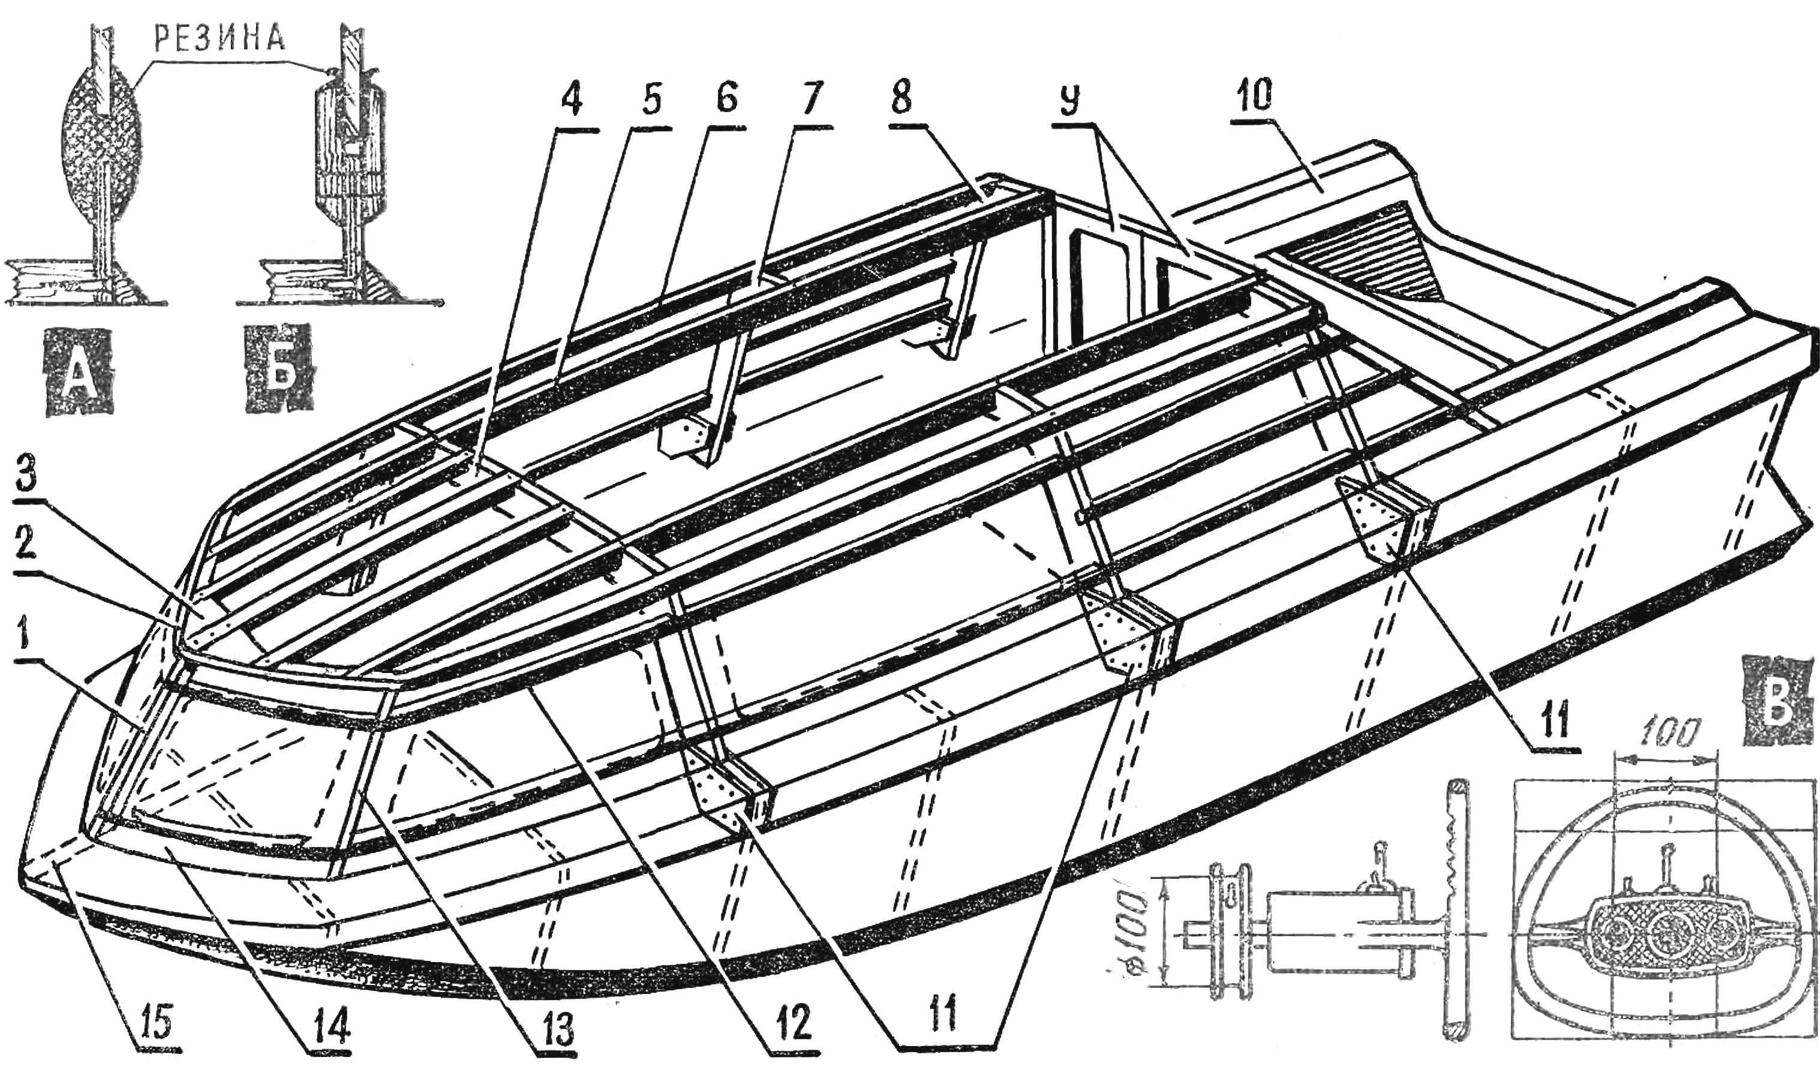 Fig. 2. The design of the superstructure (cabins)